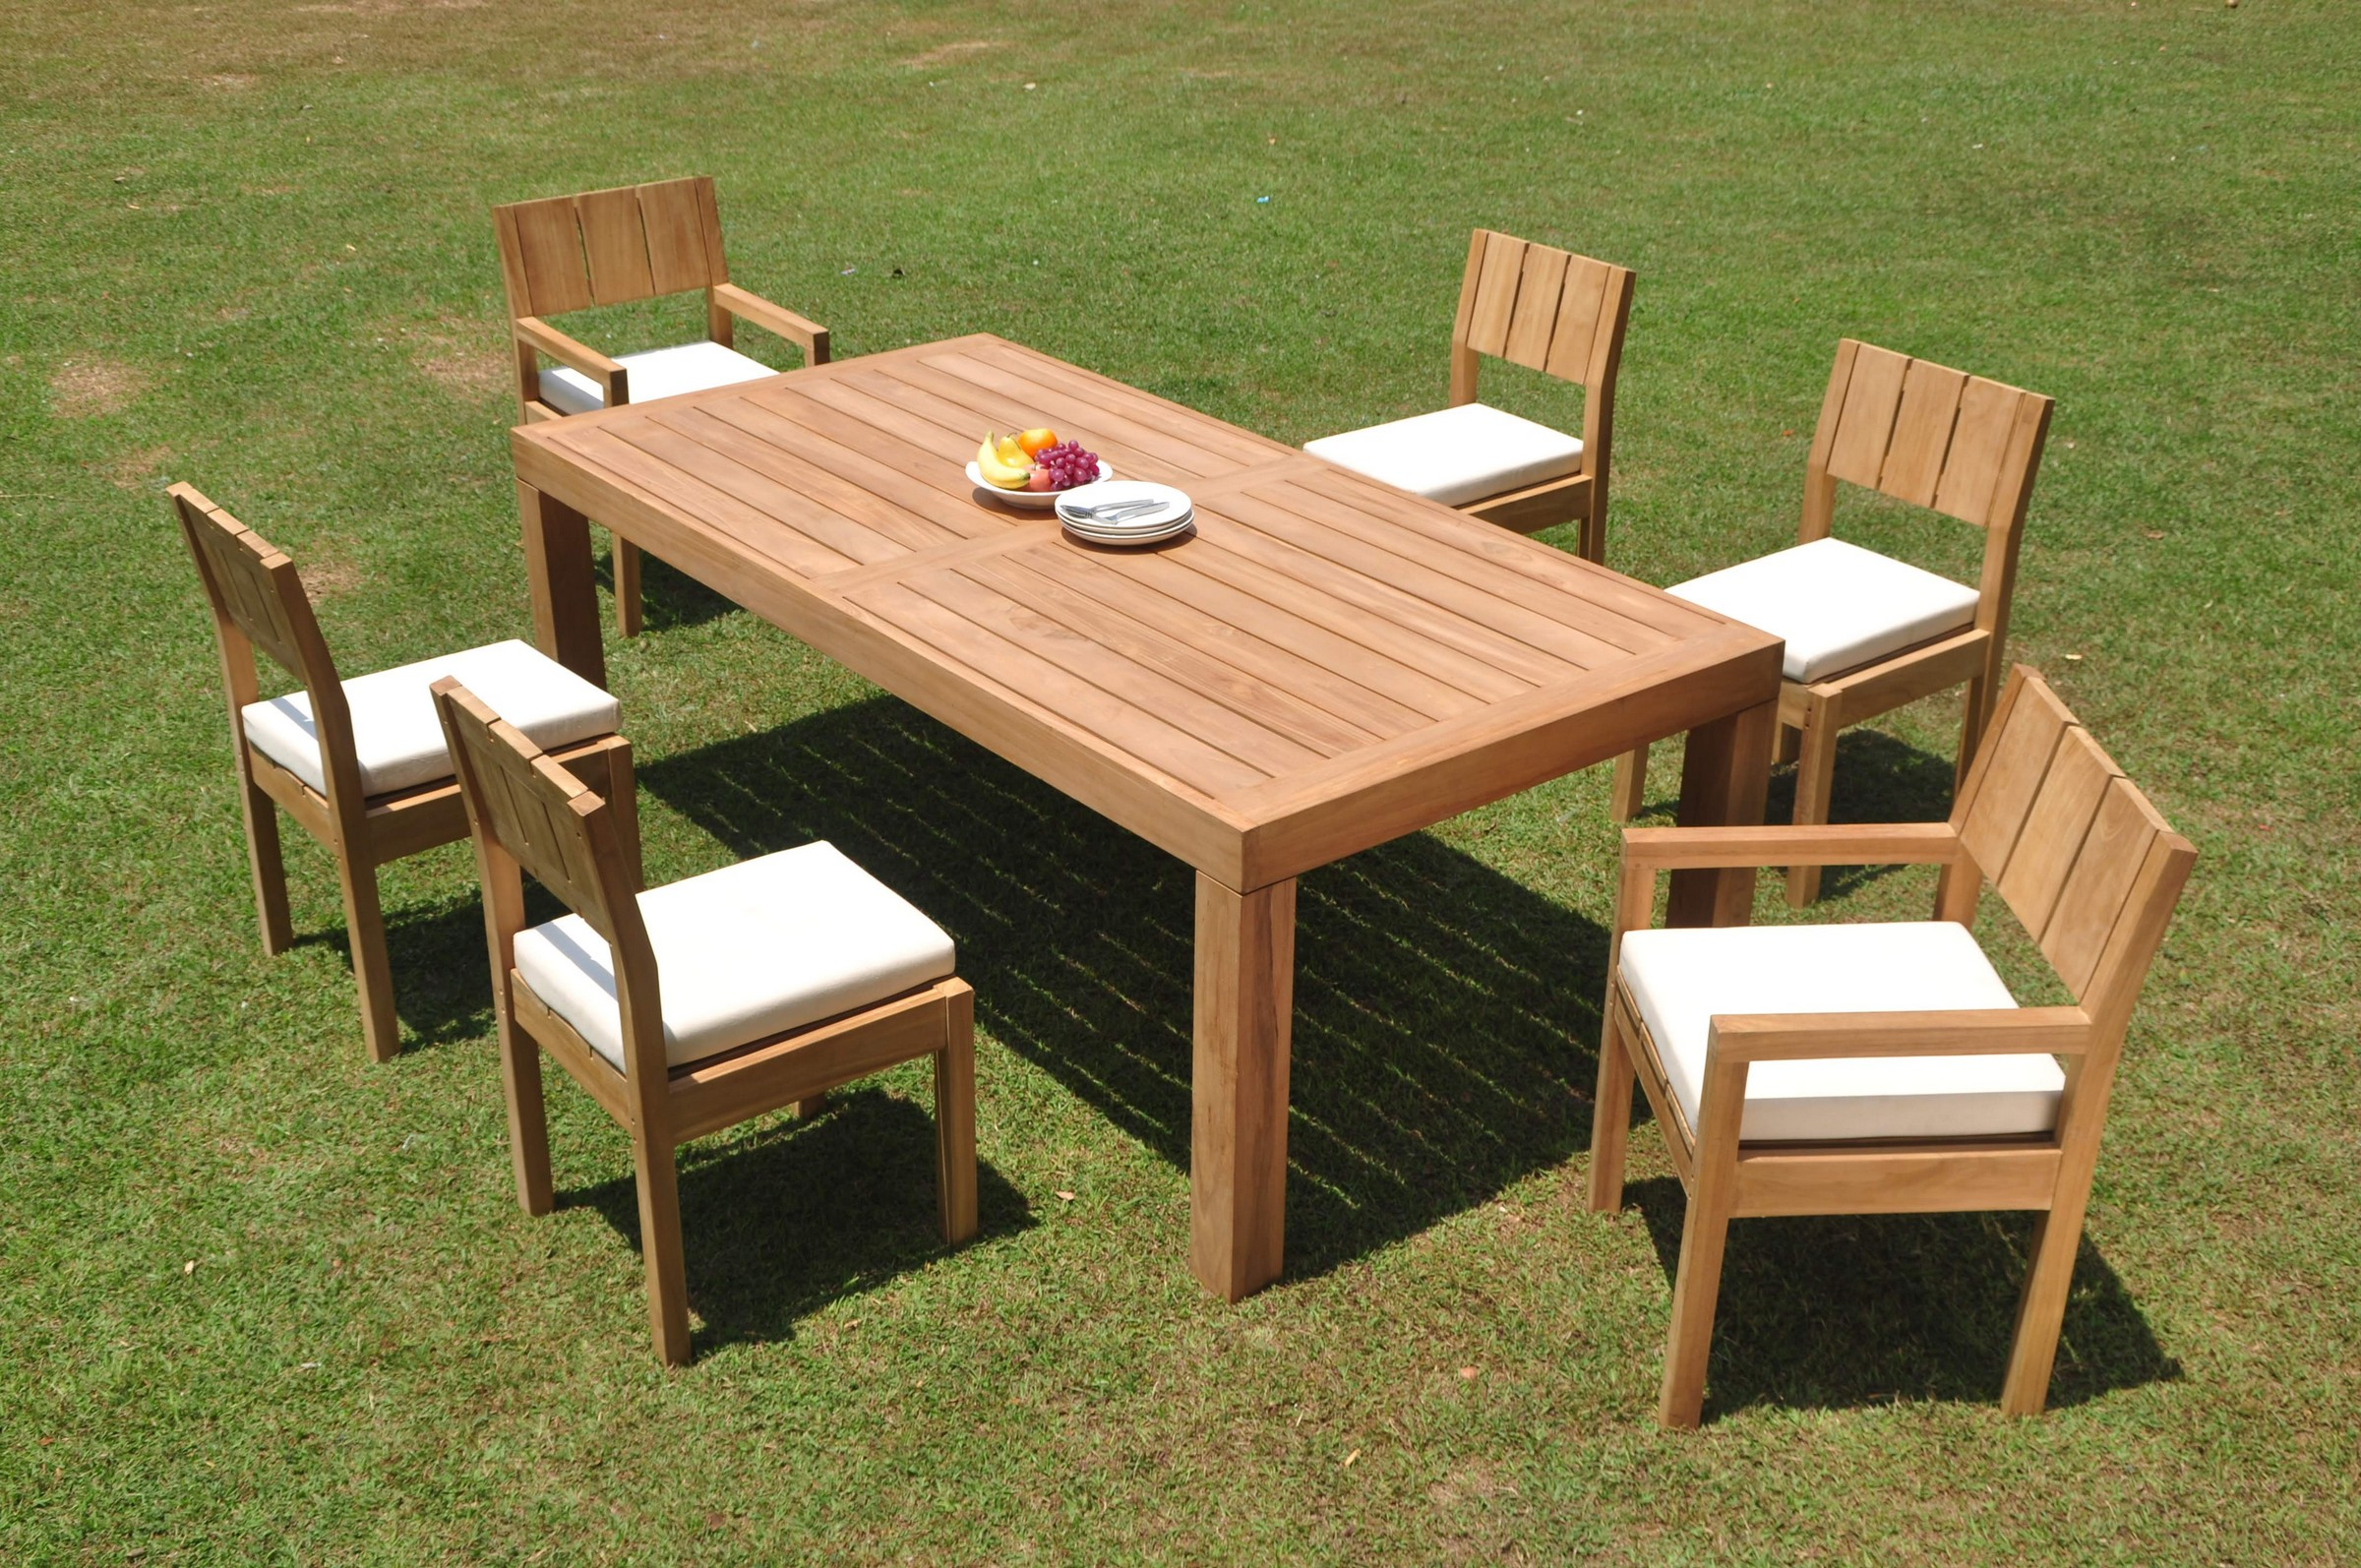 Where To Buy Outdoor Furniture In Canberra